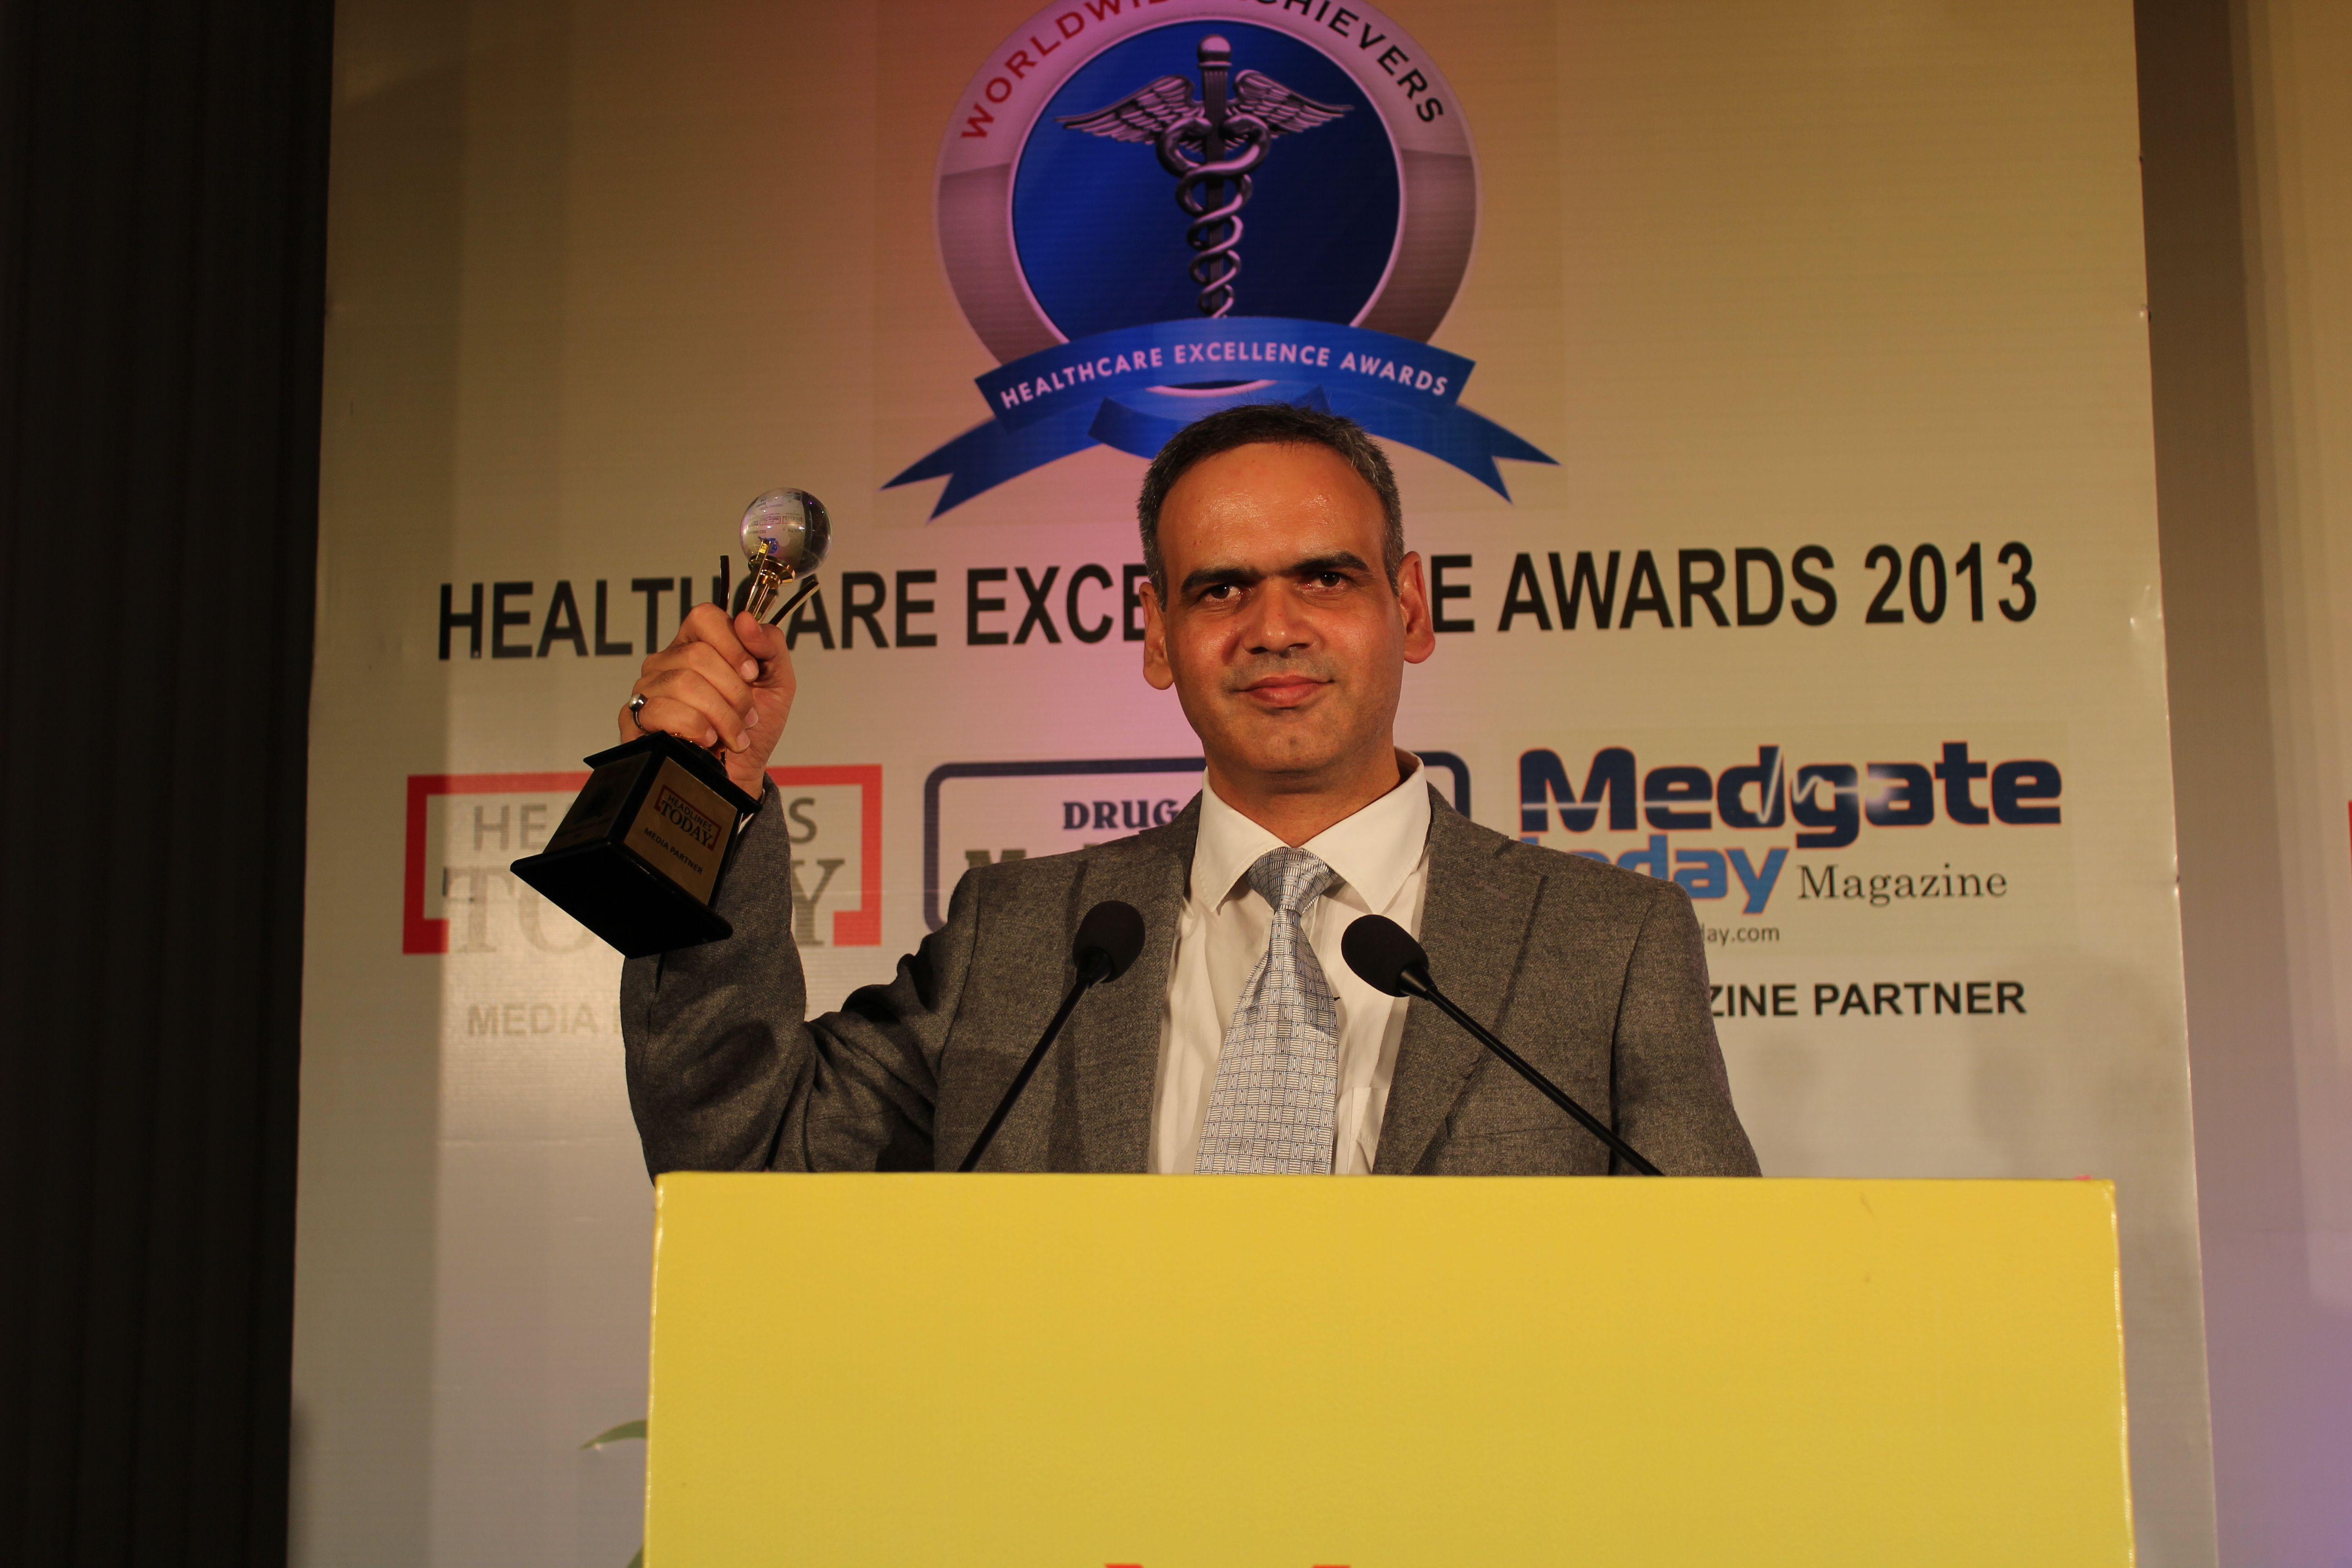 Pin on worldwide achievers health care excellence award